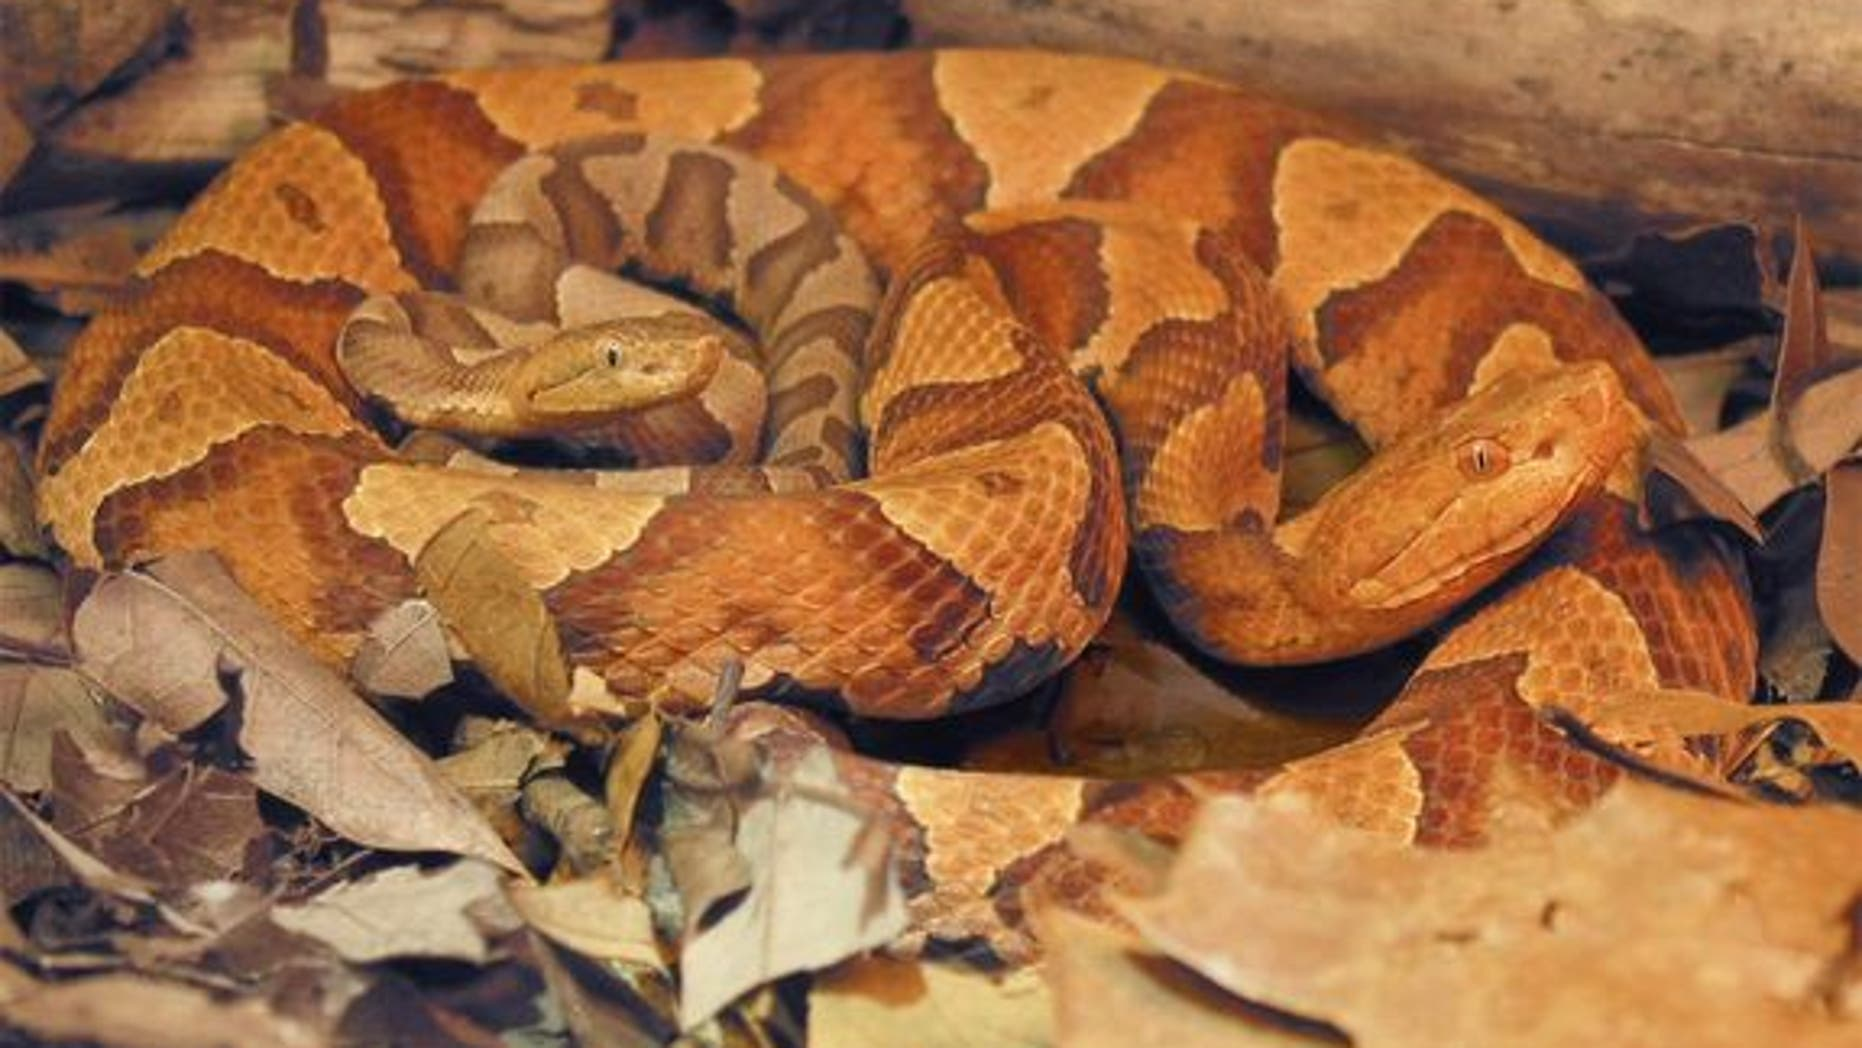 A female copperhead snake (<em>Agkistrodon contortrix</em>) and her offspring born via parthenogenesis, also called virgin birth, described in a study reported Sept. 12, 2012 in the journal Biology Letters.